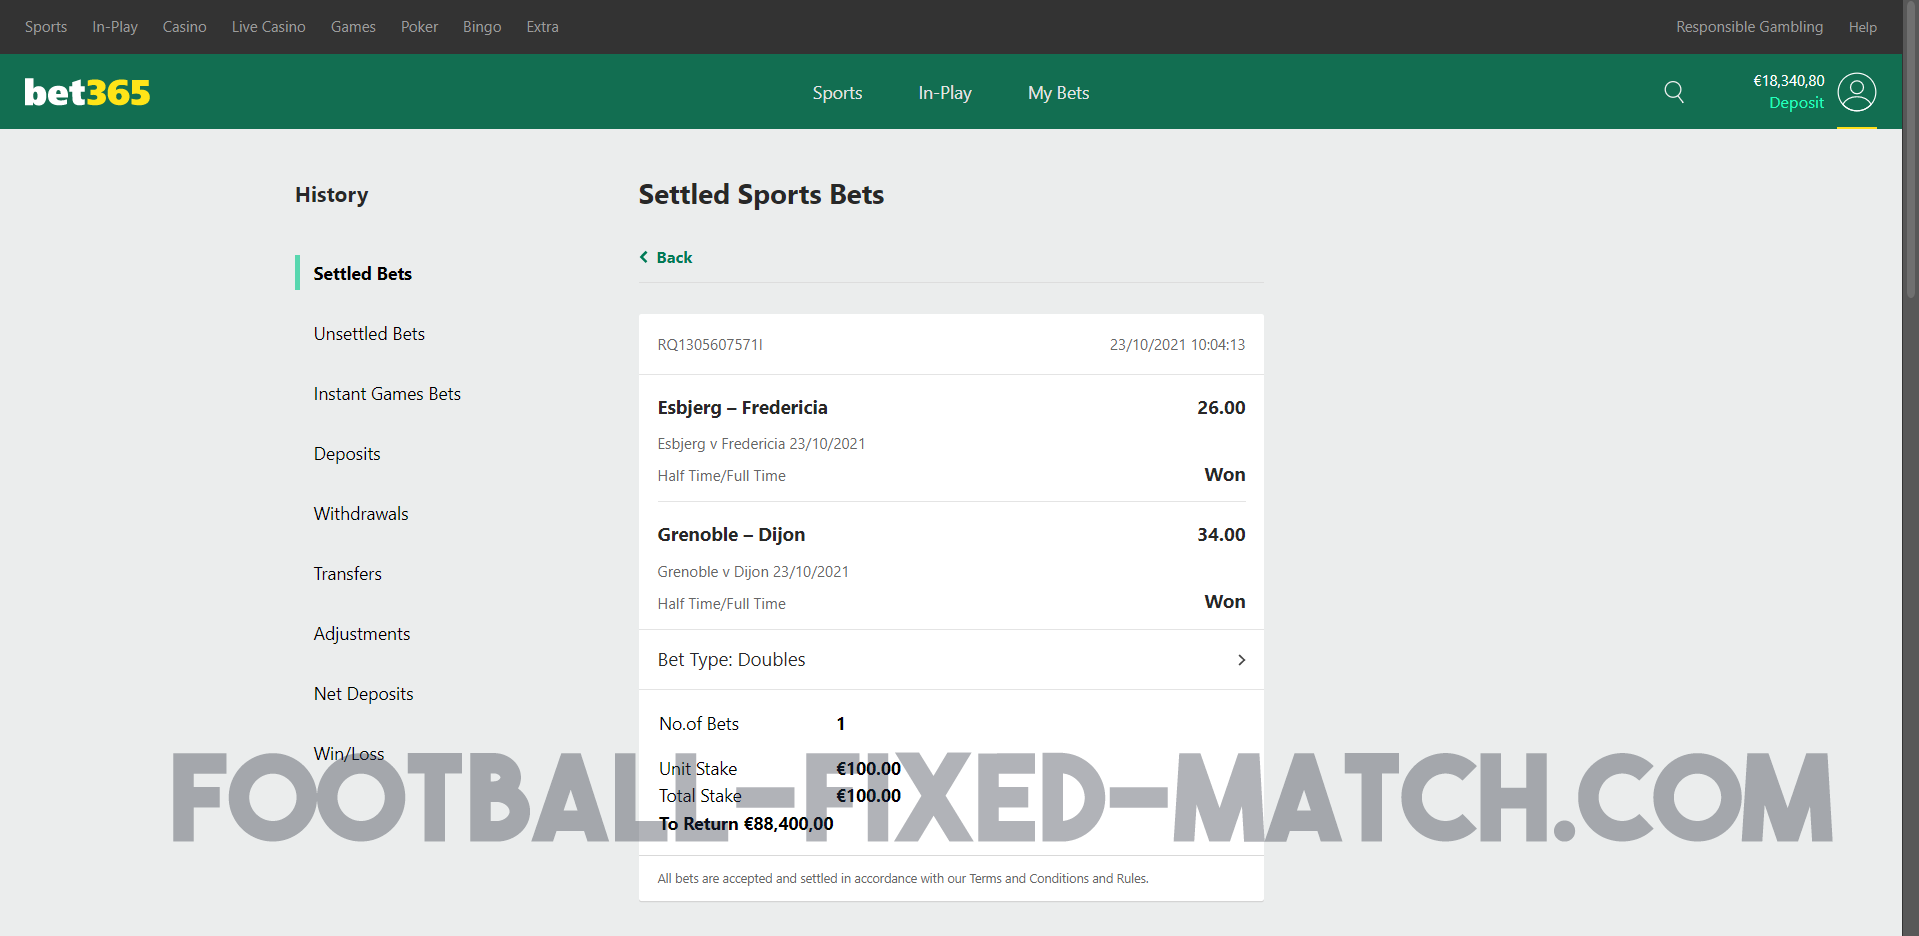 TODAY HT FT FIXED MATCHES